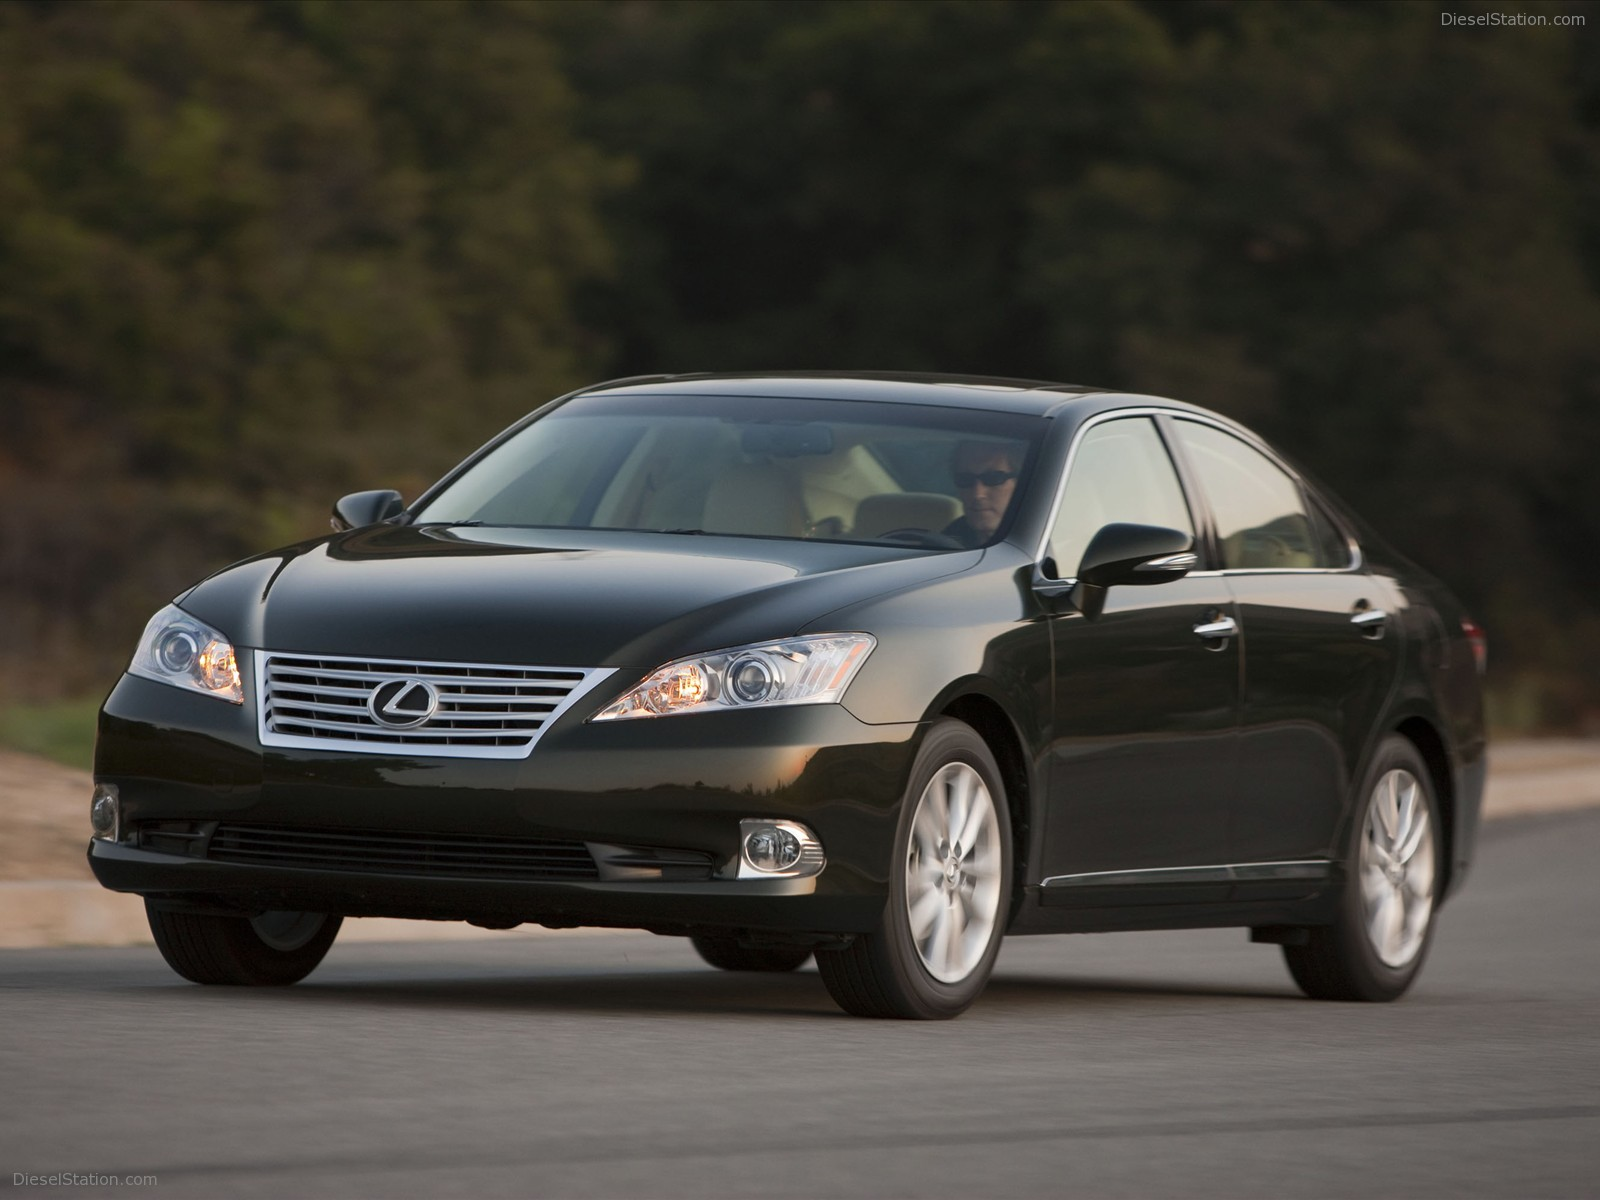 Lexus ES 2010: Review, Amazing Pictures and Images – Look at the